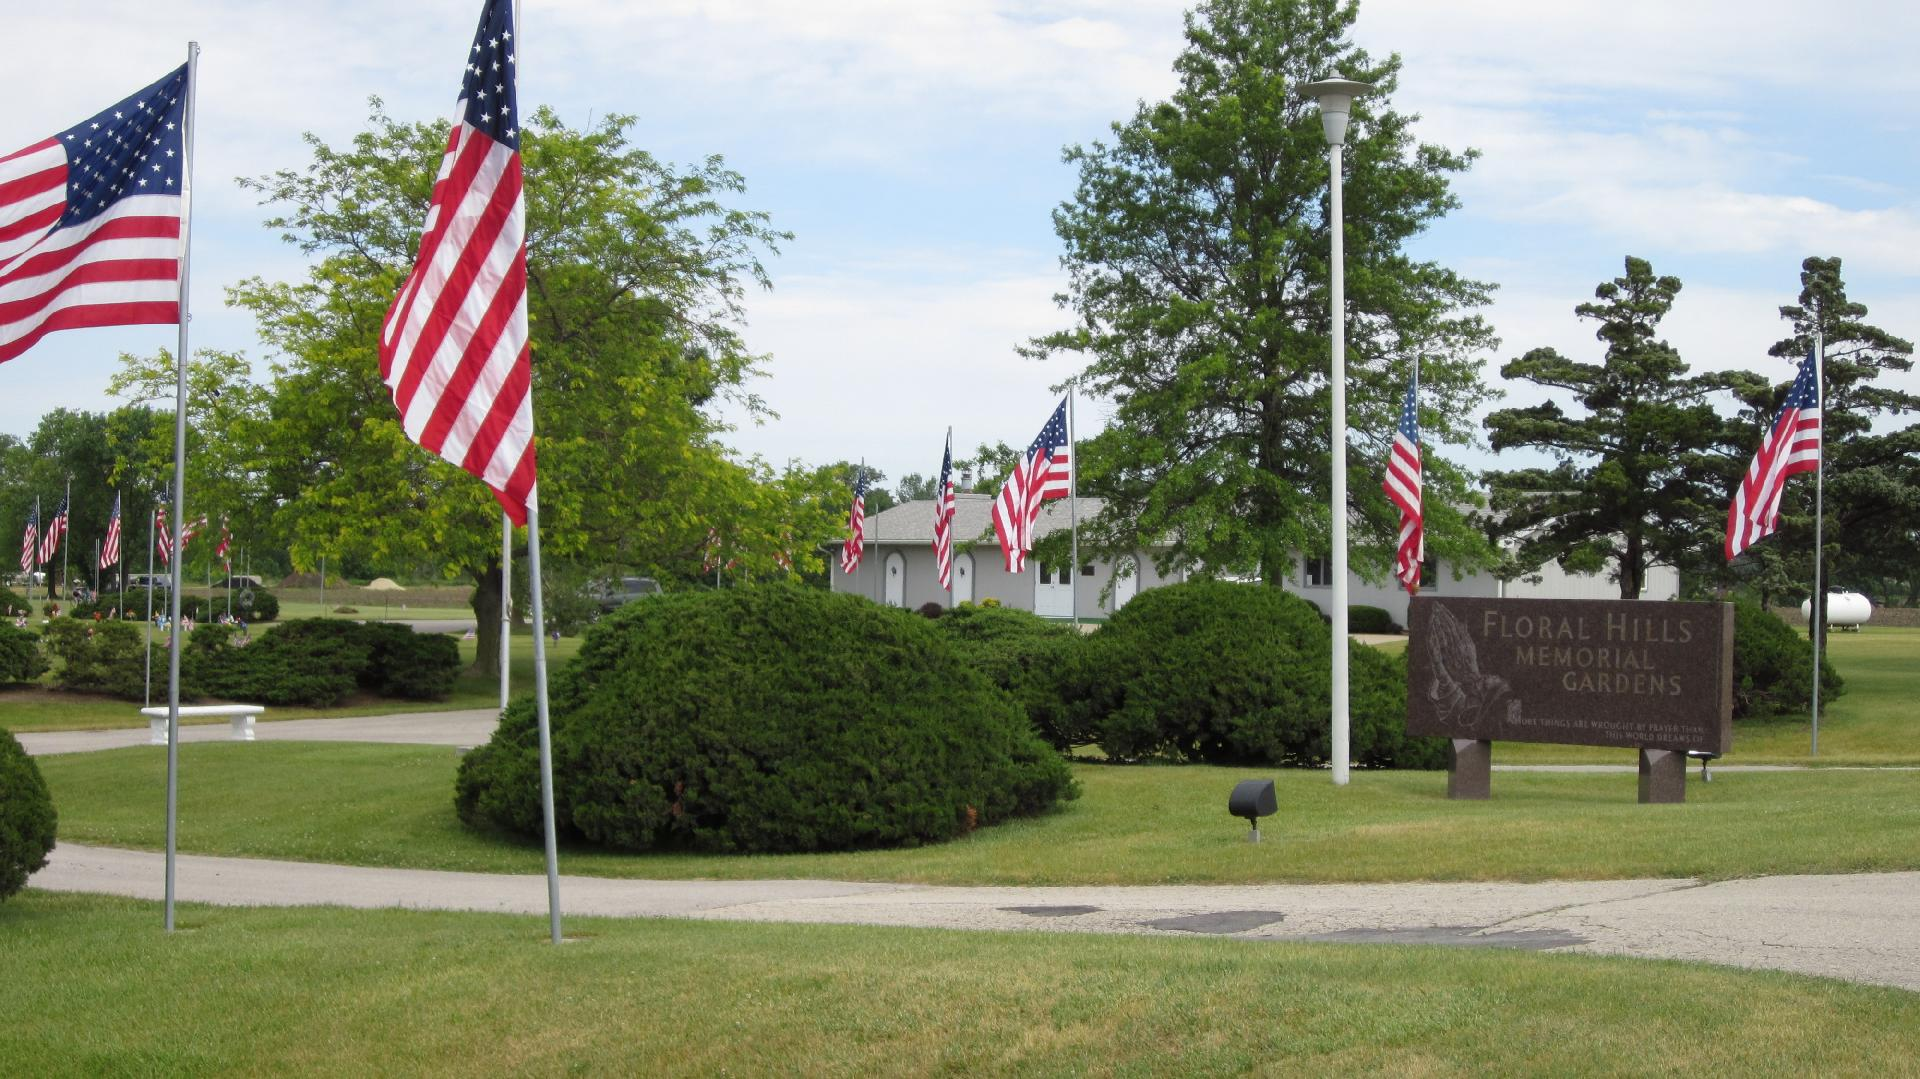 Floral Hills Memorial Gardens & Funeral Home